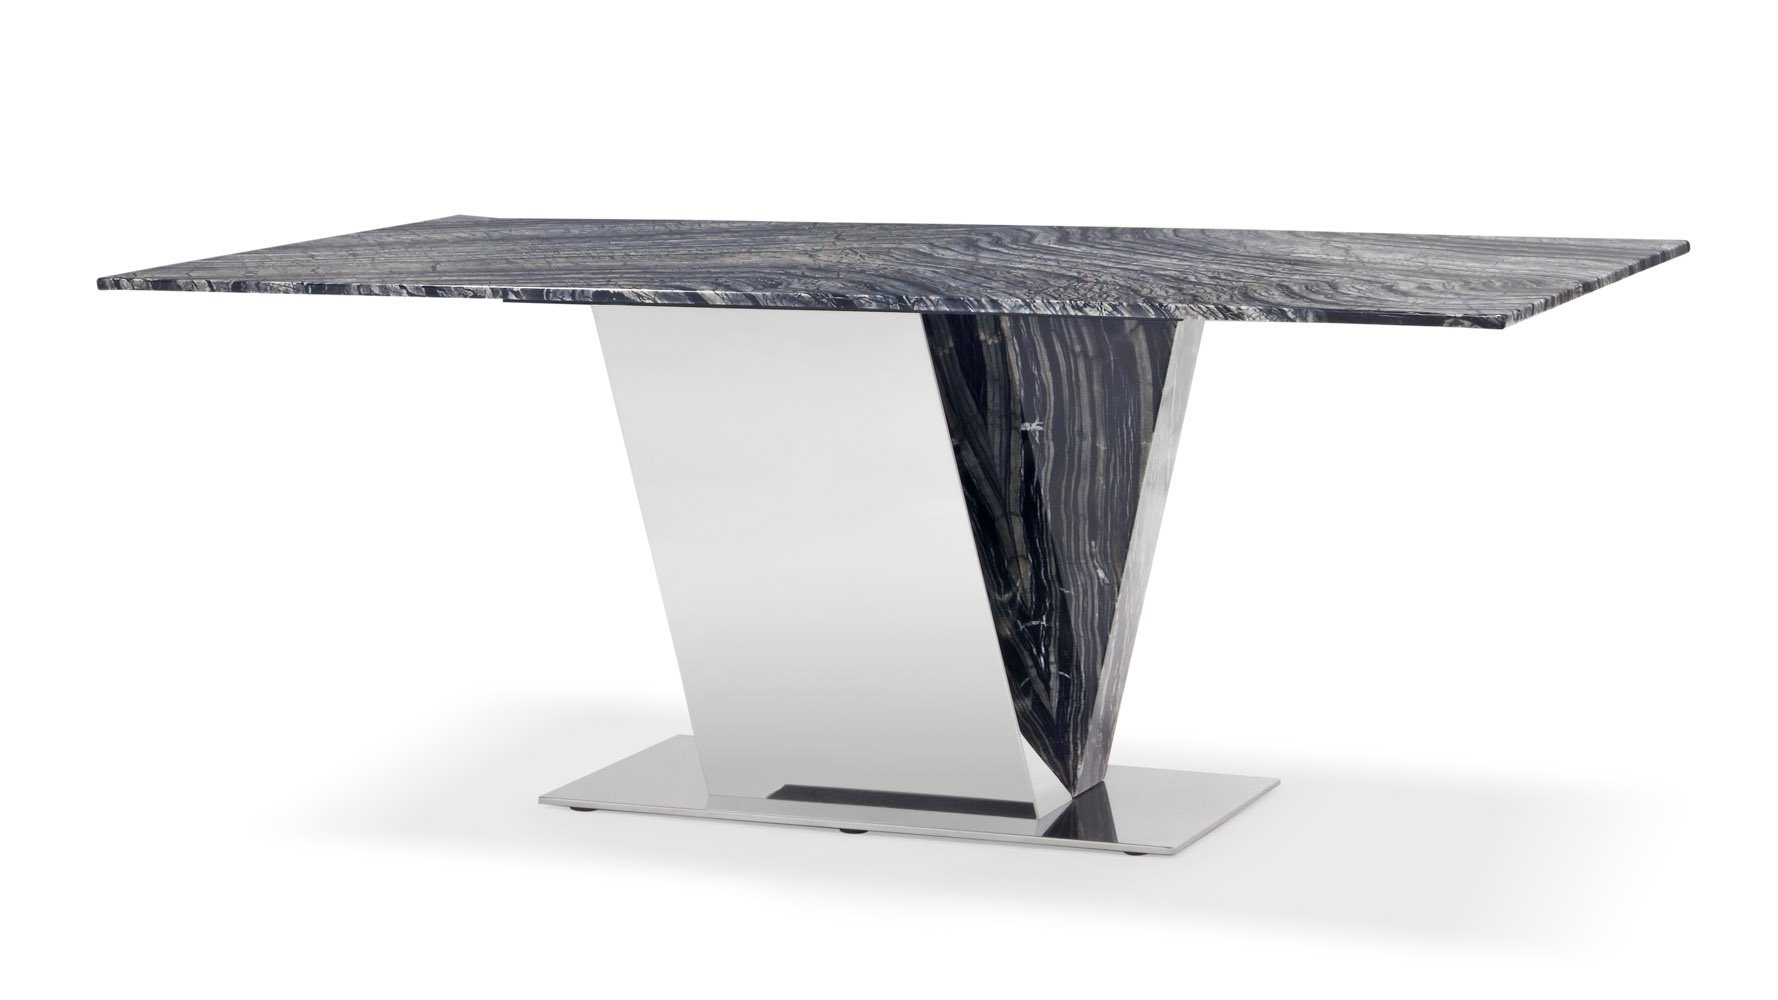 Black and White Marble Polished Stainless Steel Malbec Dining